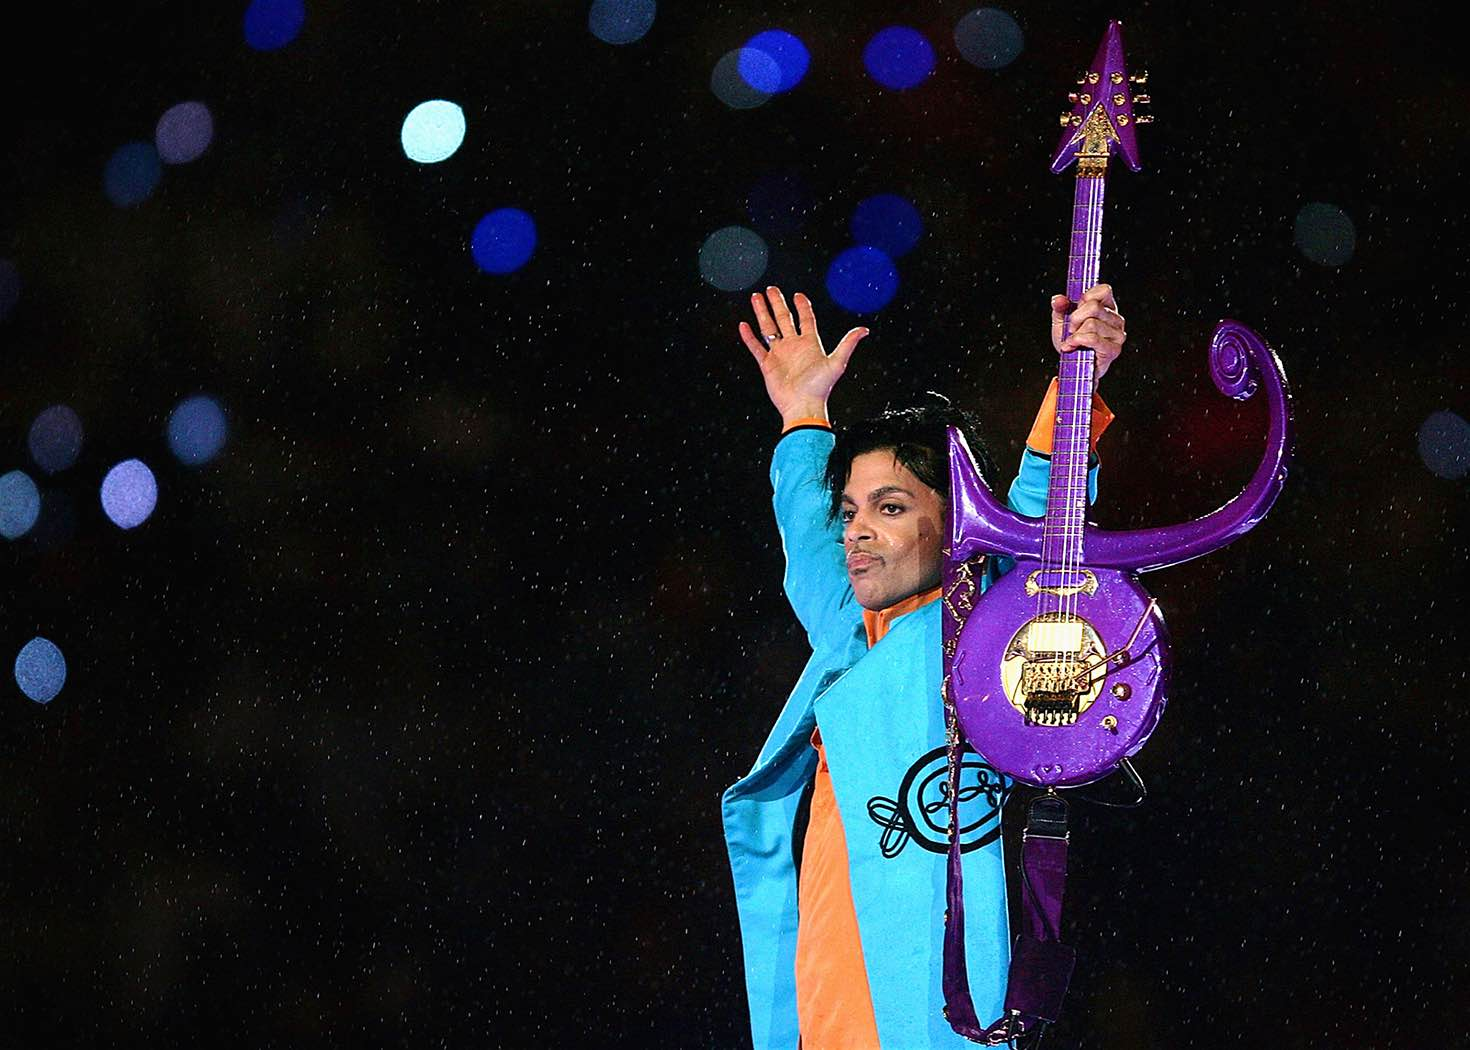 Prince performs at Super Bowl XL © Jonathan Daniel / Getty Images